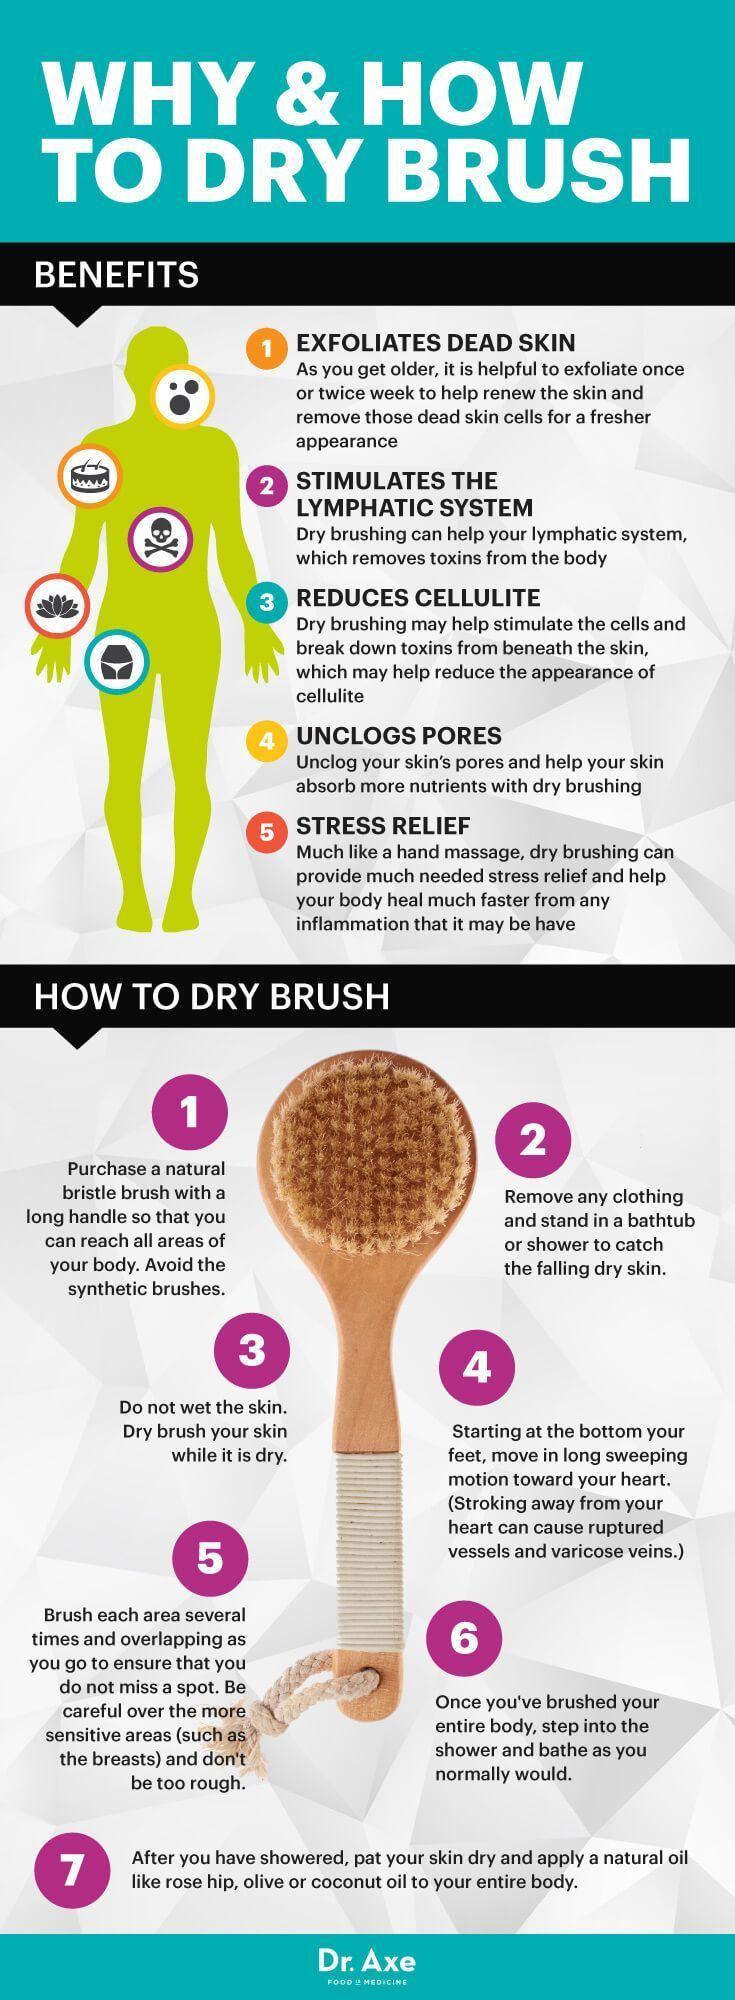 Dry brushing benefits - Dr. Axe http://www.draxe.com #health #holistic #natural